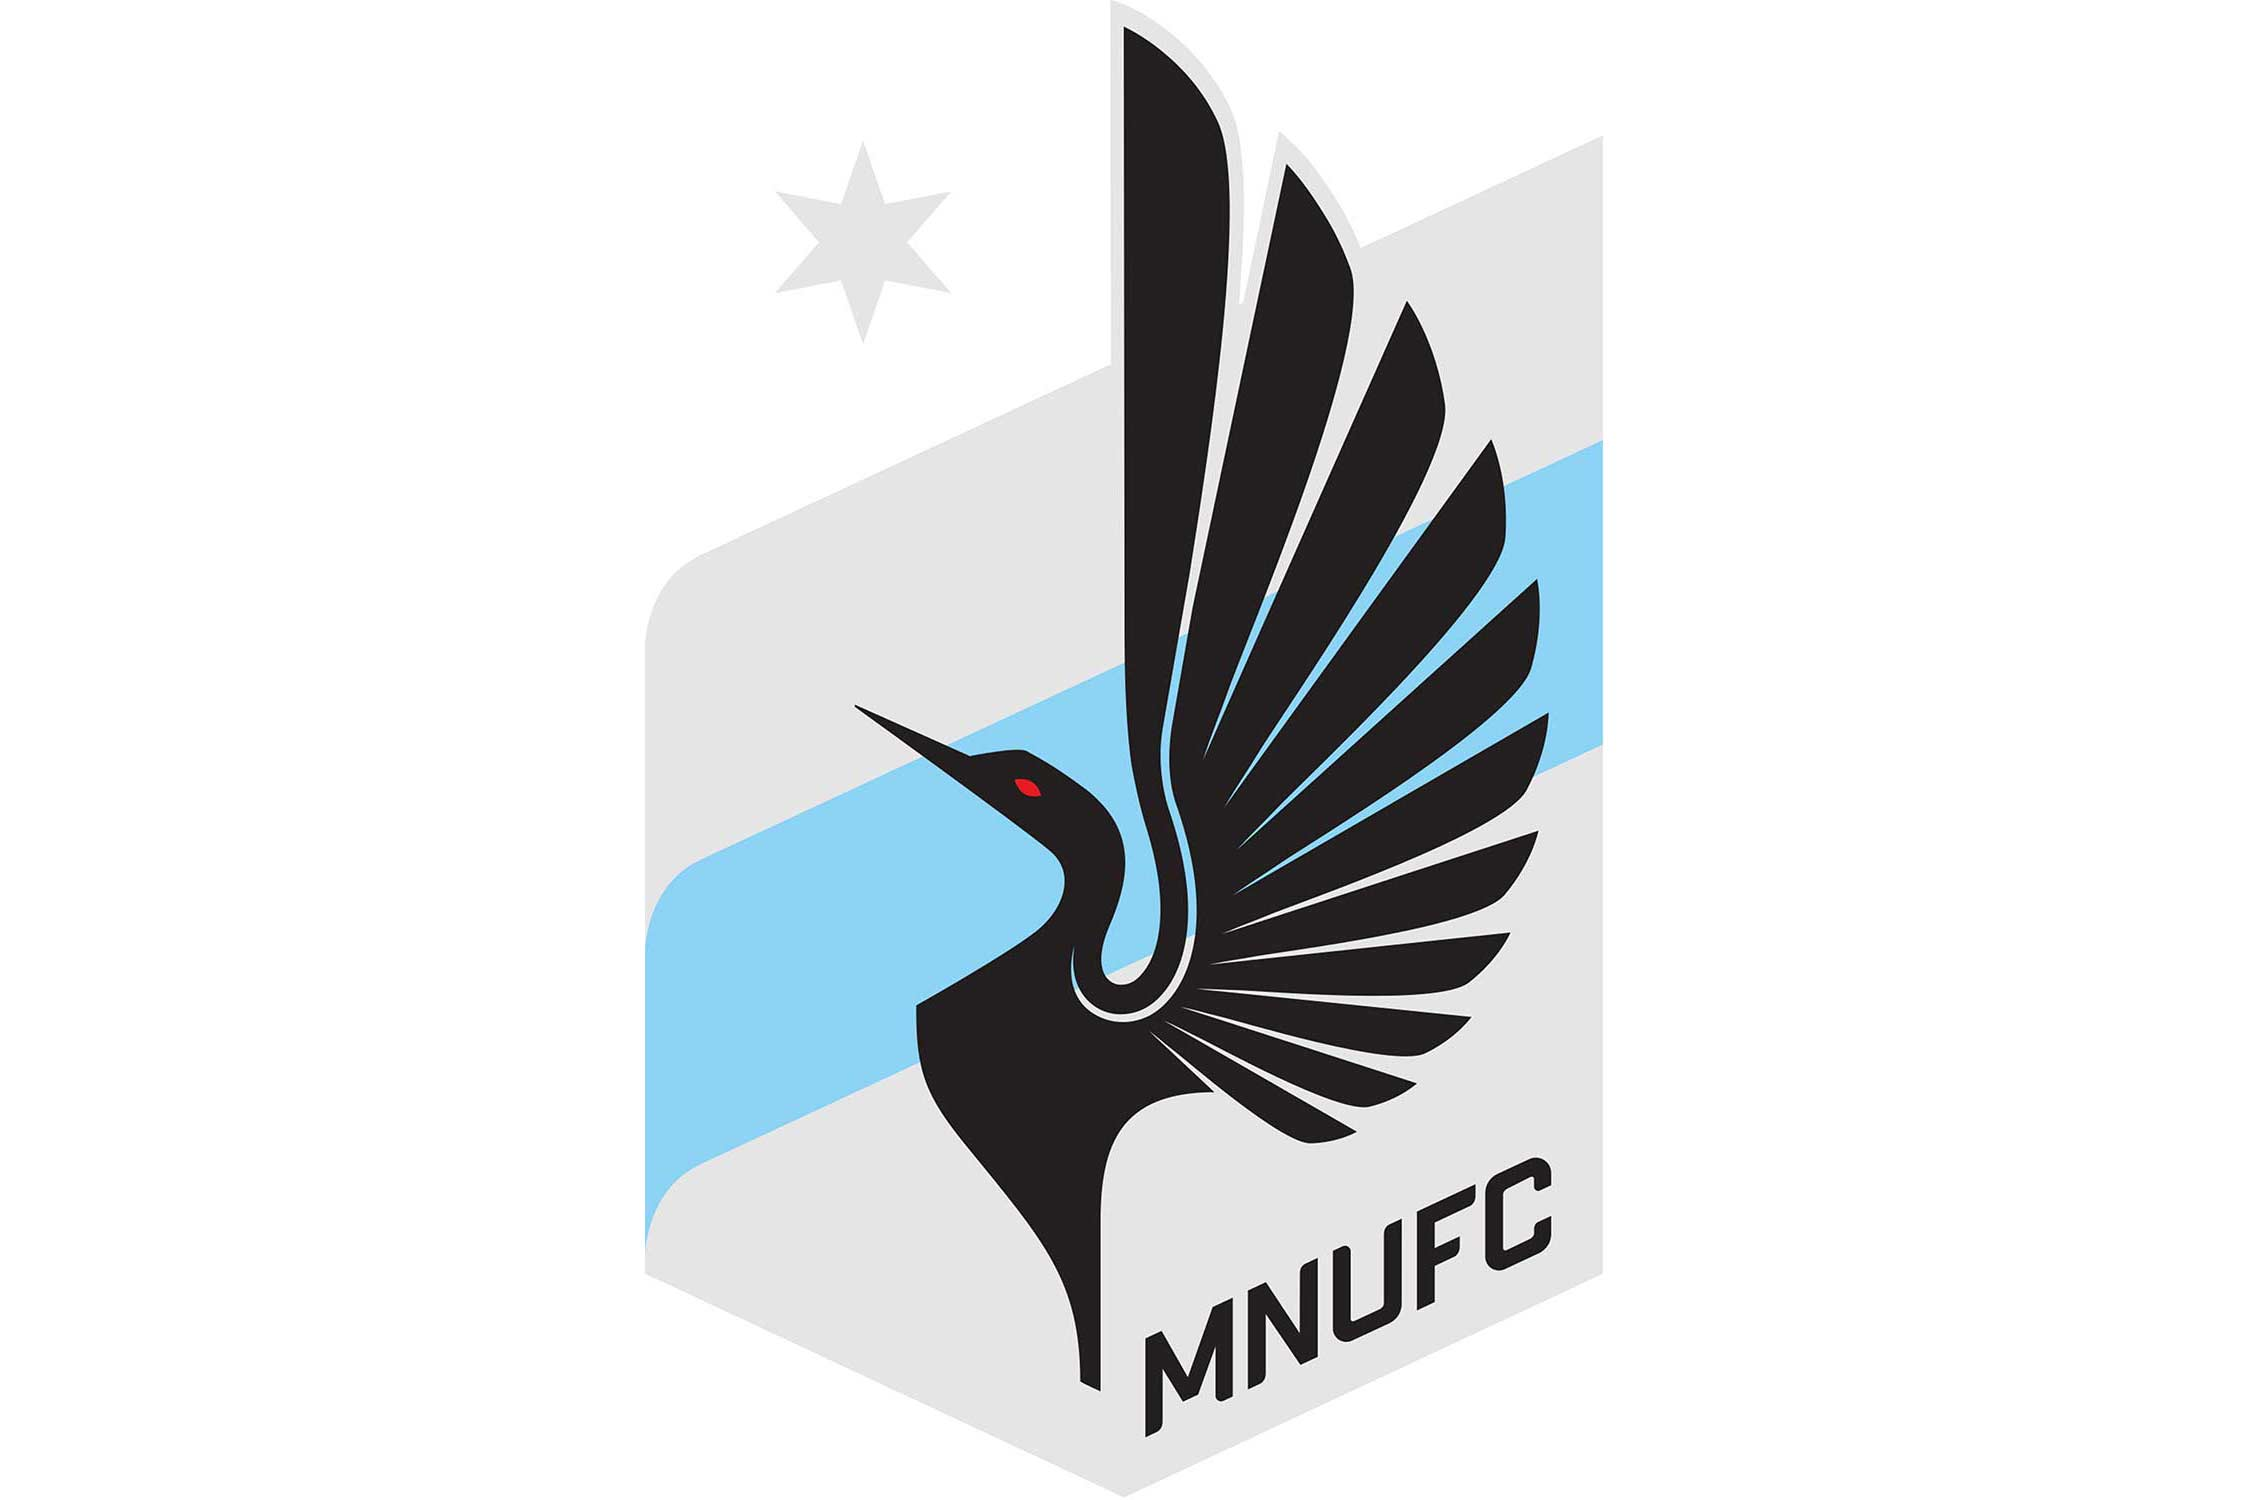 One of the newer brands in American soccer, Minnesota United's crest has plenty of references to its club's state. The gray symbolizes the Iron Range, a collection of iron-mining districts in the state. The blue represents the Mississippi River, the star represents the North Star, and the bird featured in the center is the Loon–the state bird.